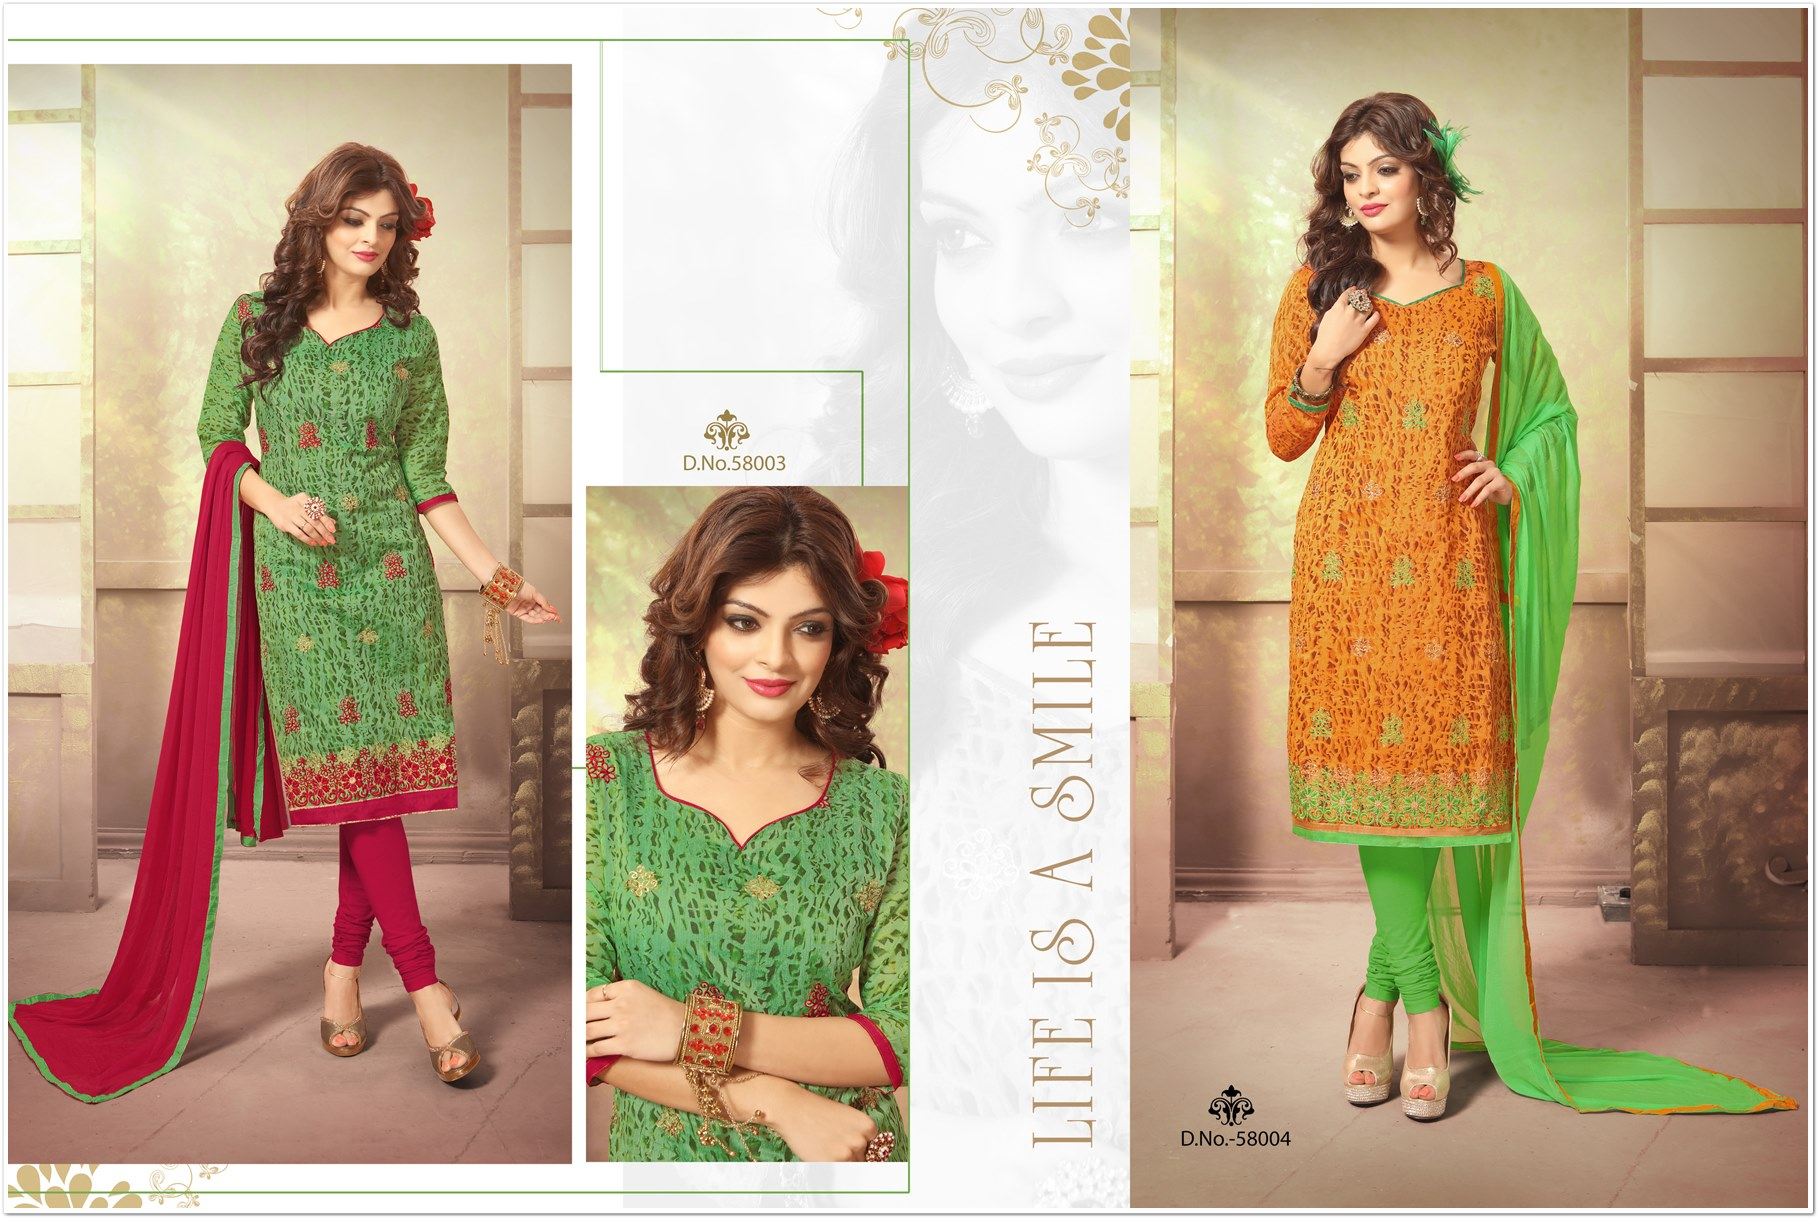 Kavya Low Range Chanderi Salwar Suit